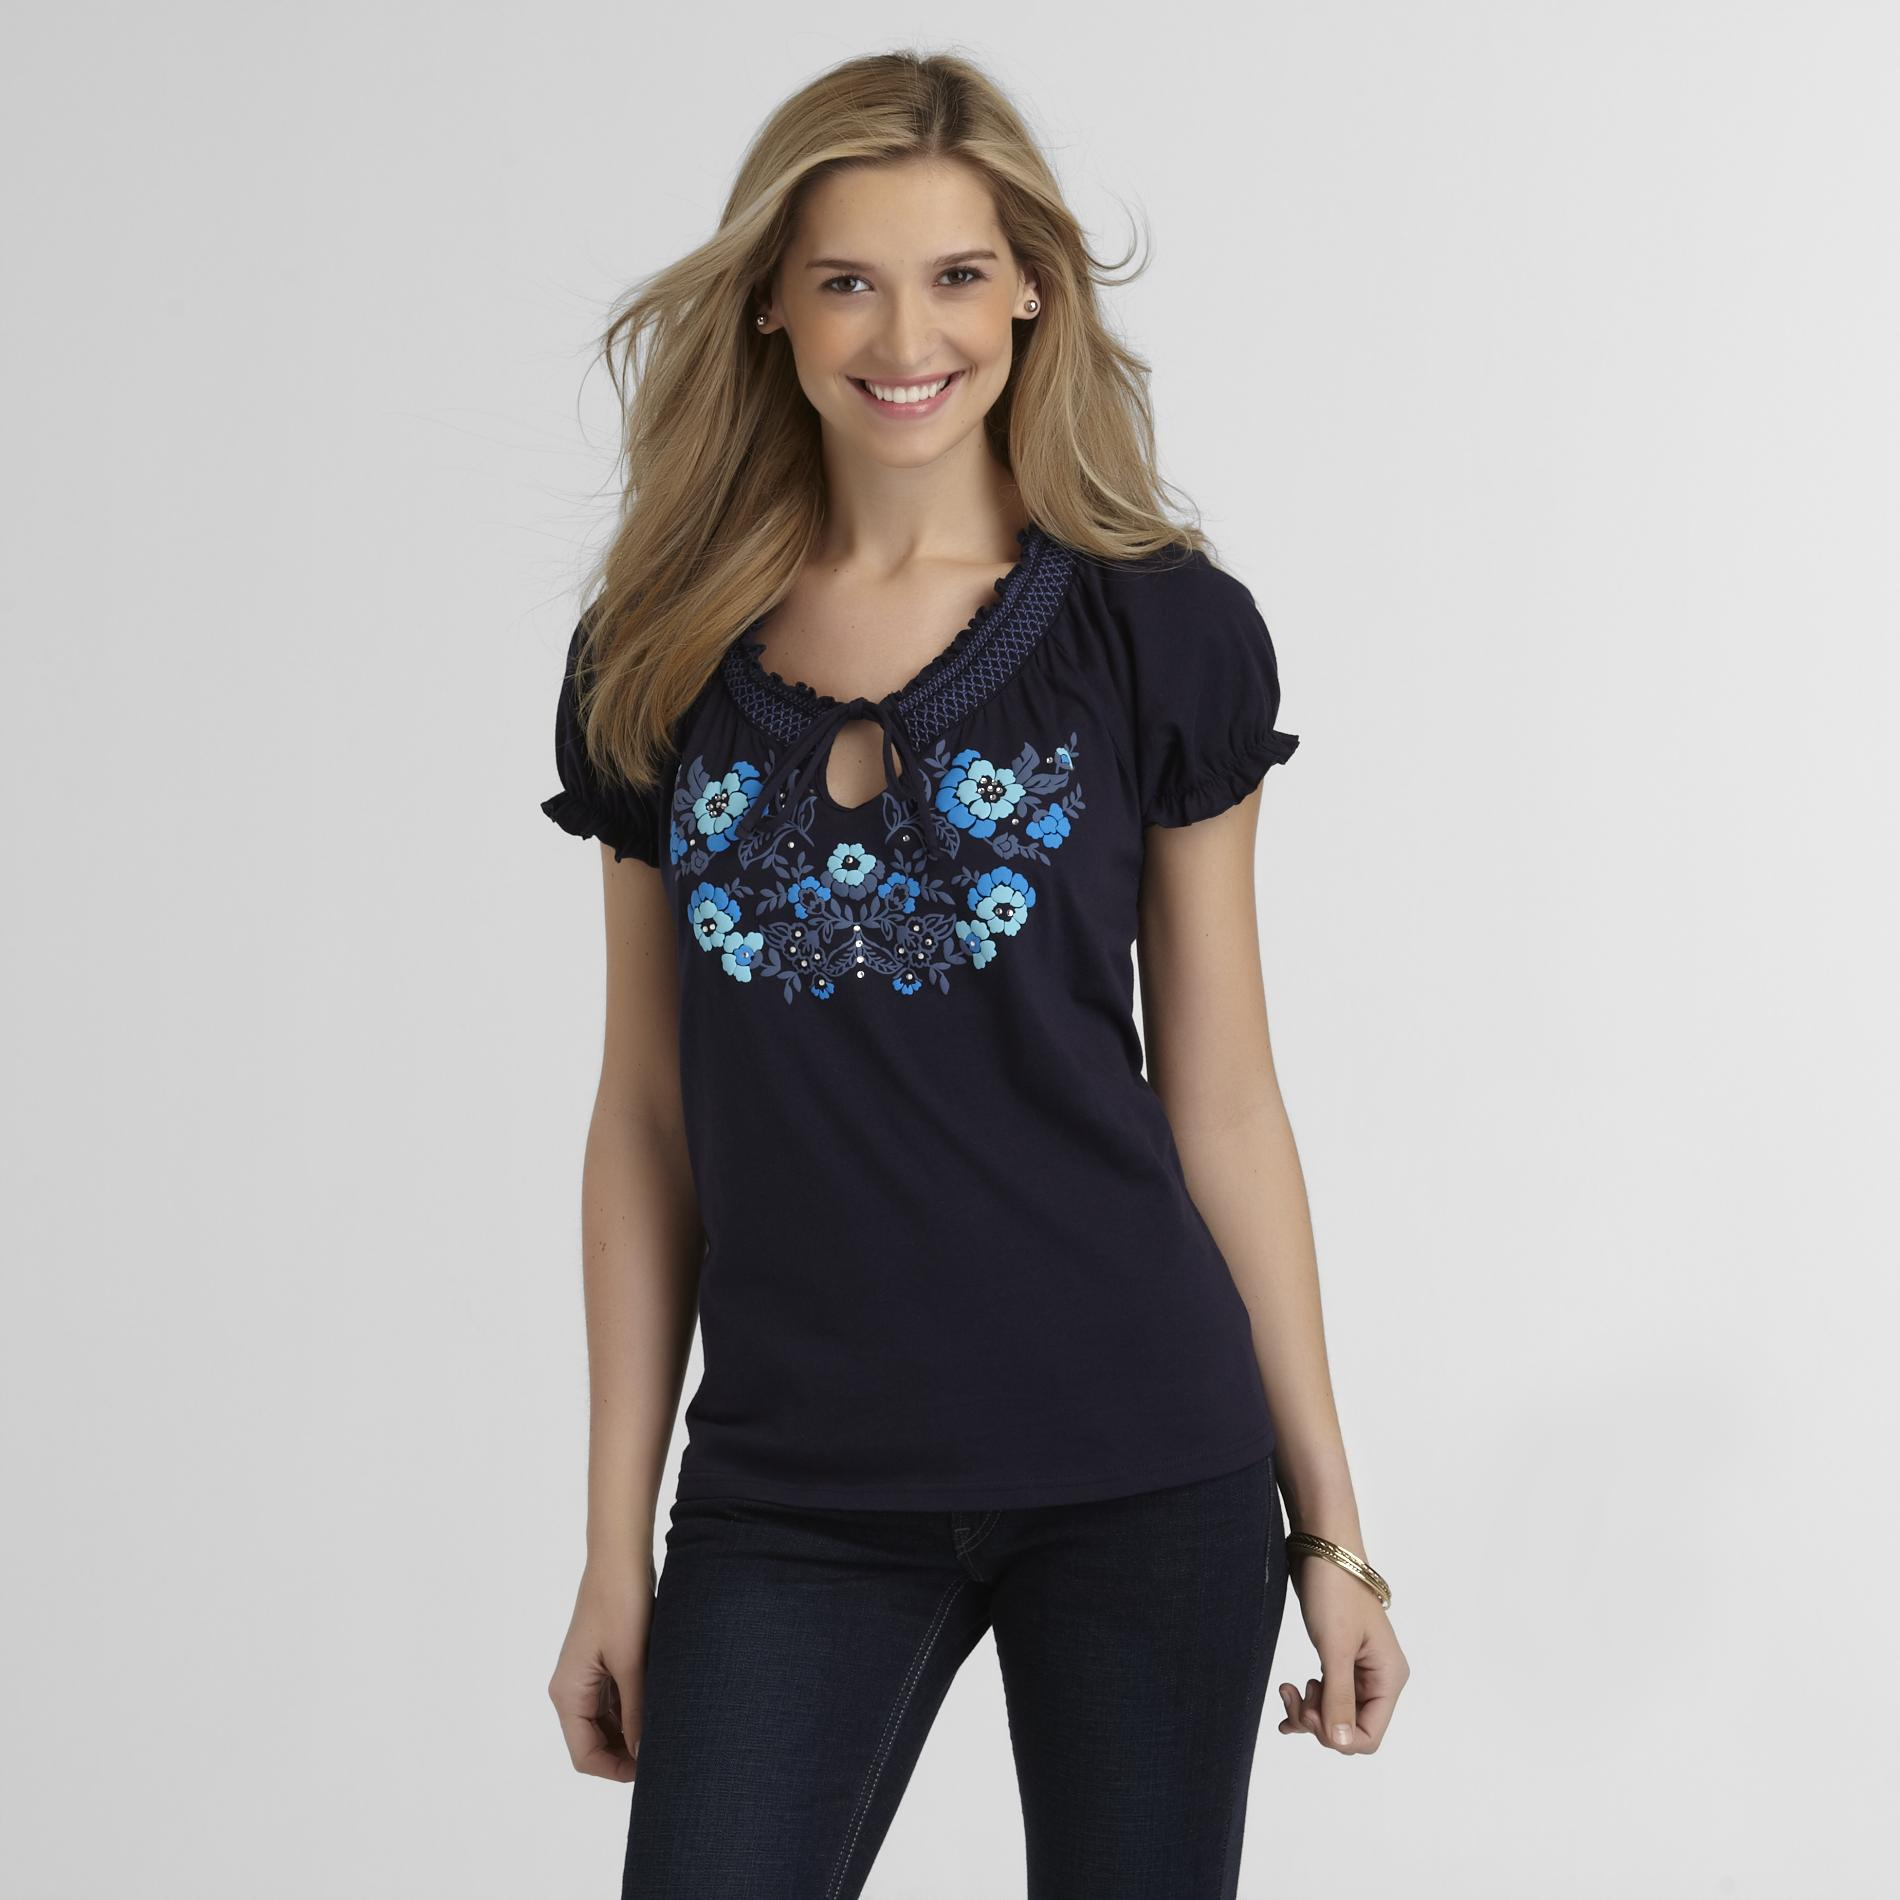 Basic Editions Women's Peasant Blouse - Rhinestones at Kmart.com